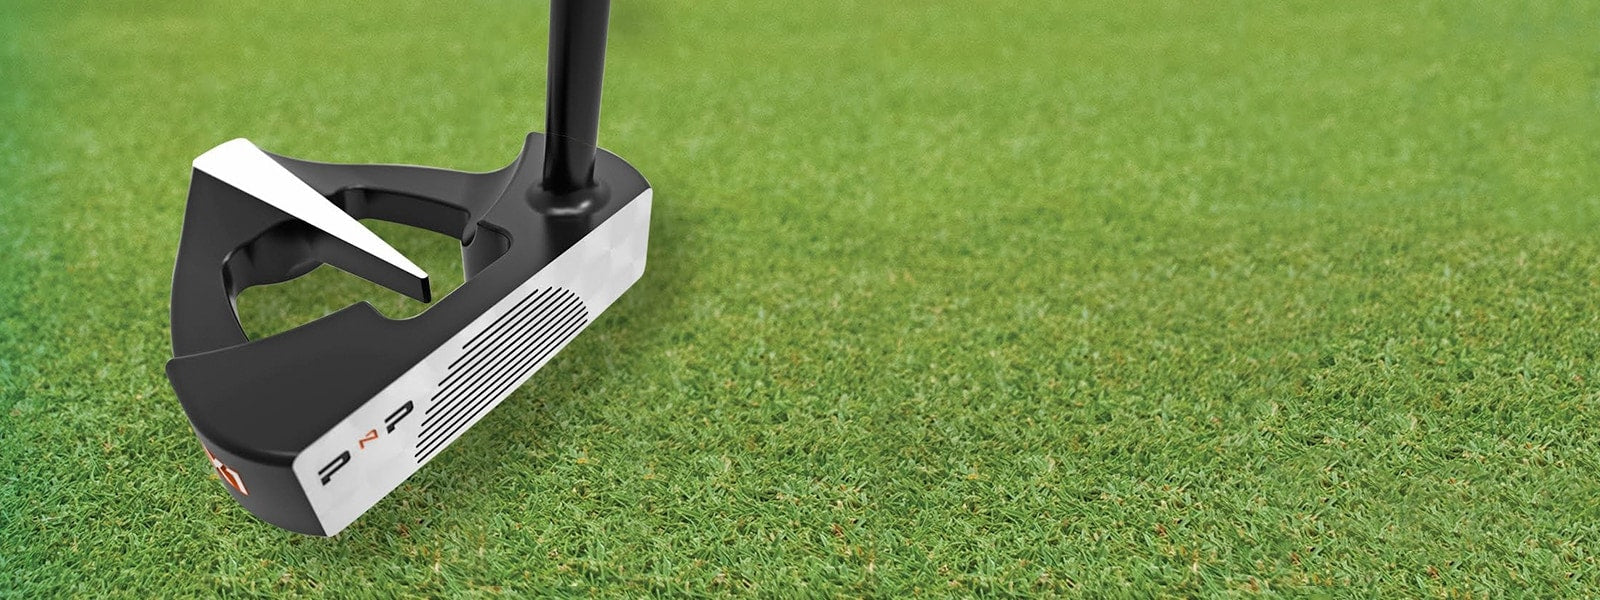 Putting the SX1 Point-N-Putt Putter to the Test